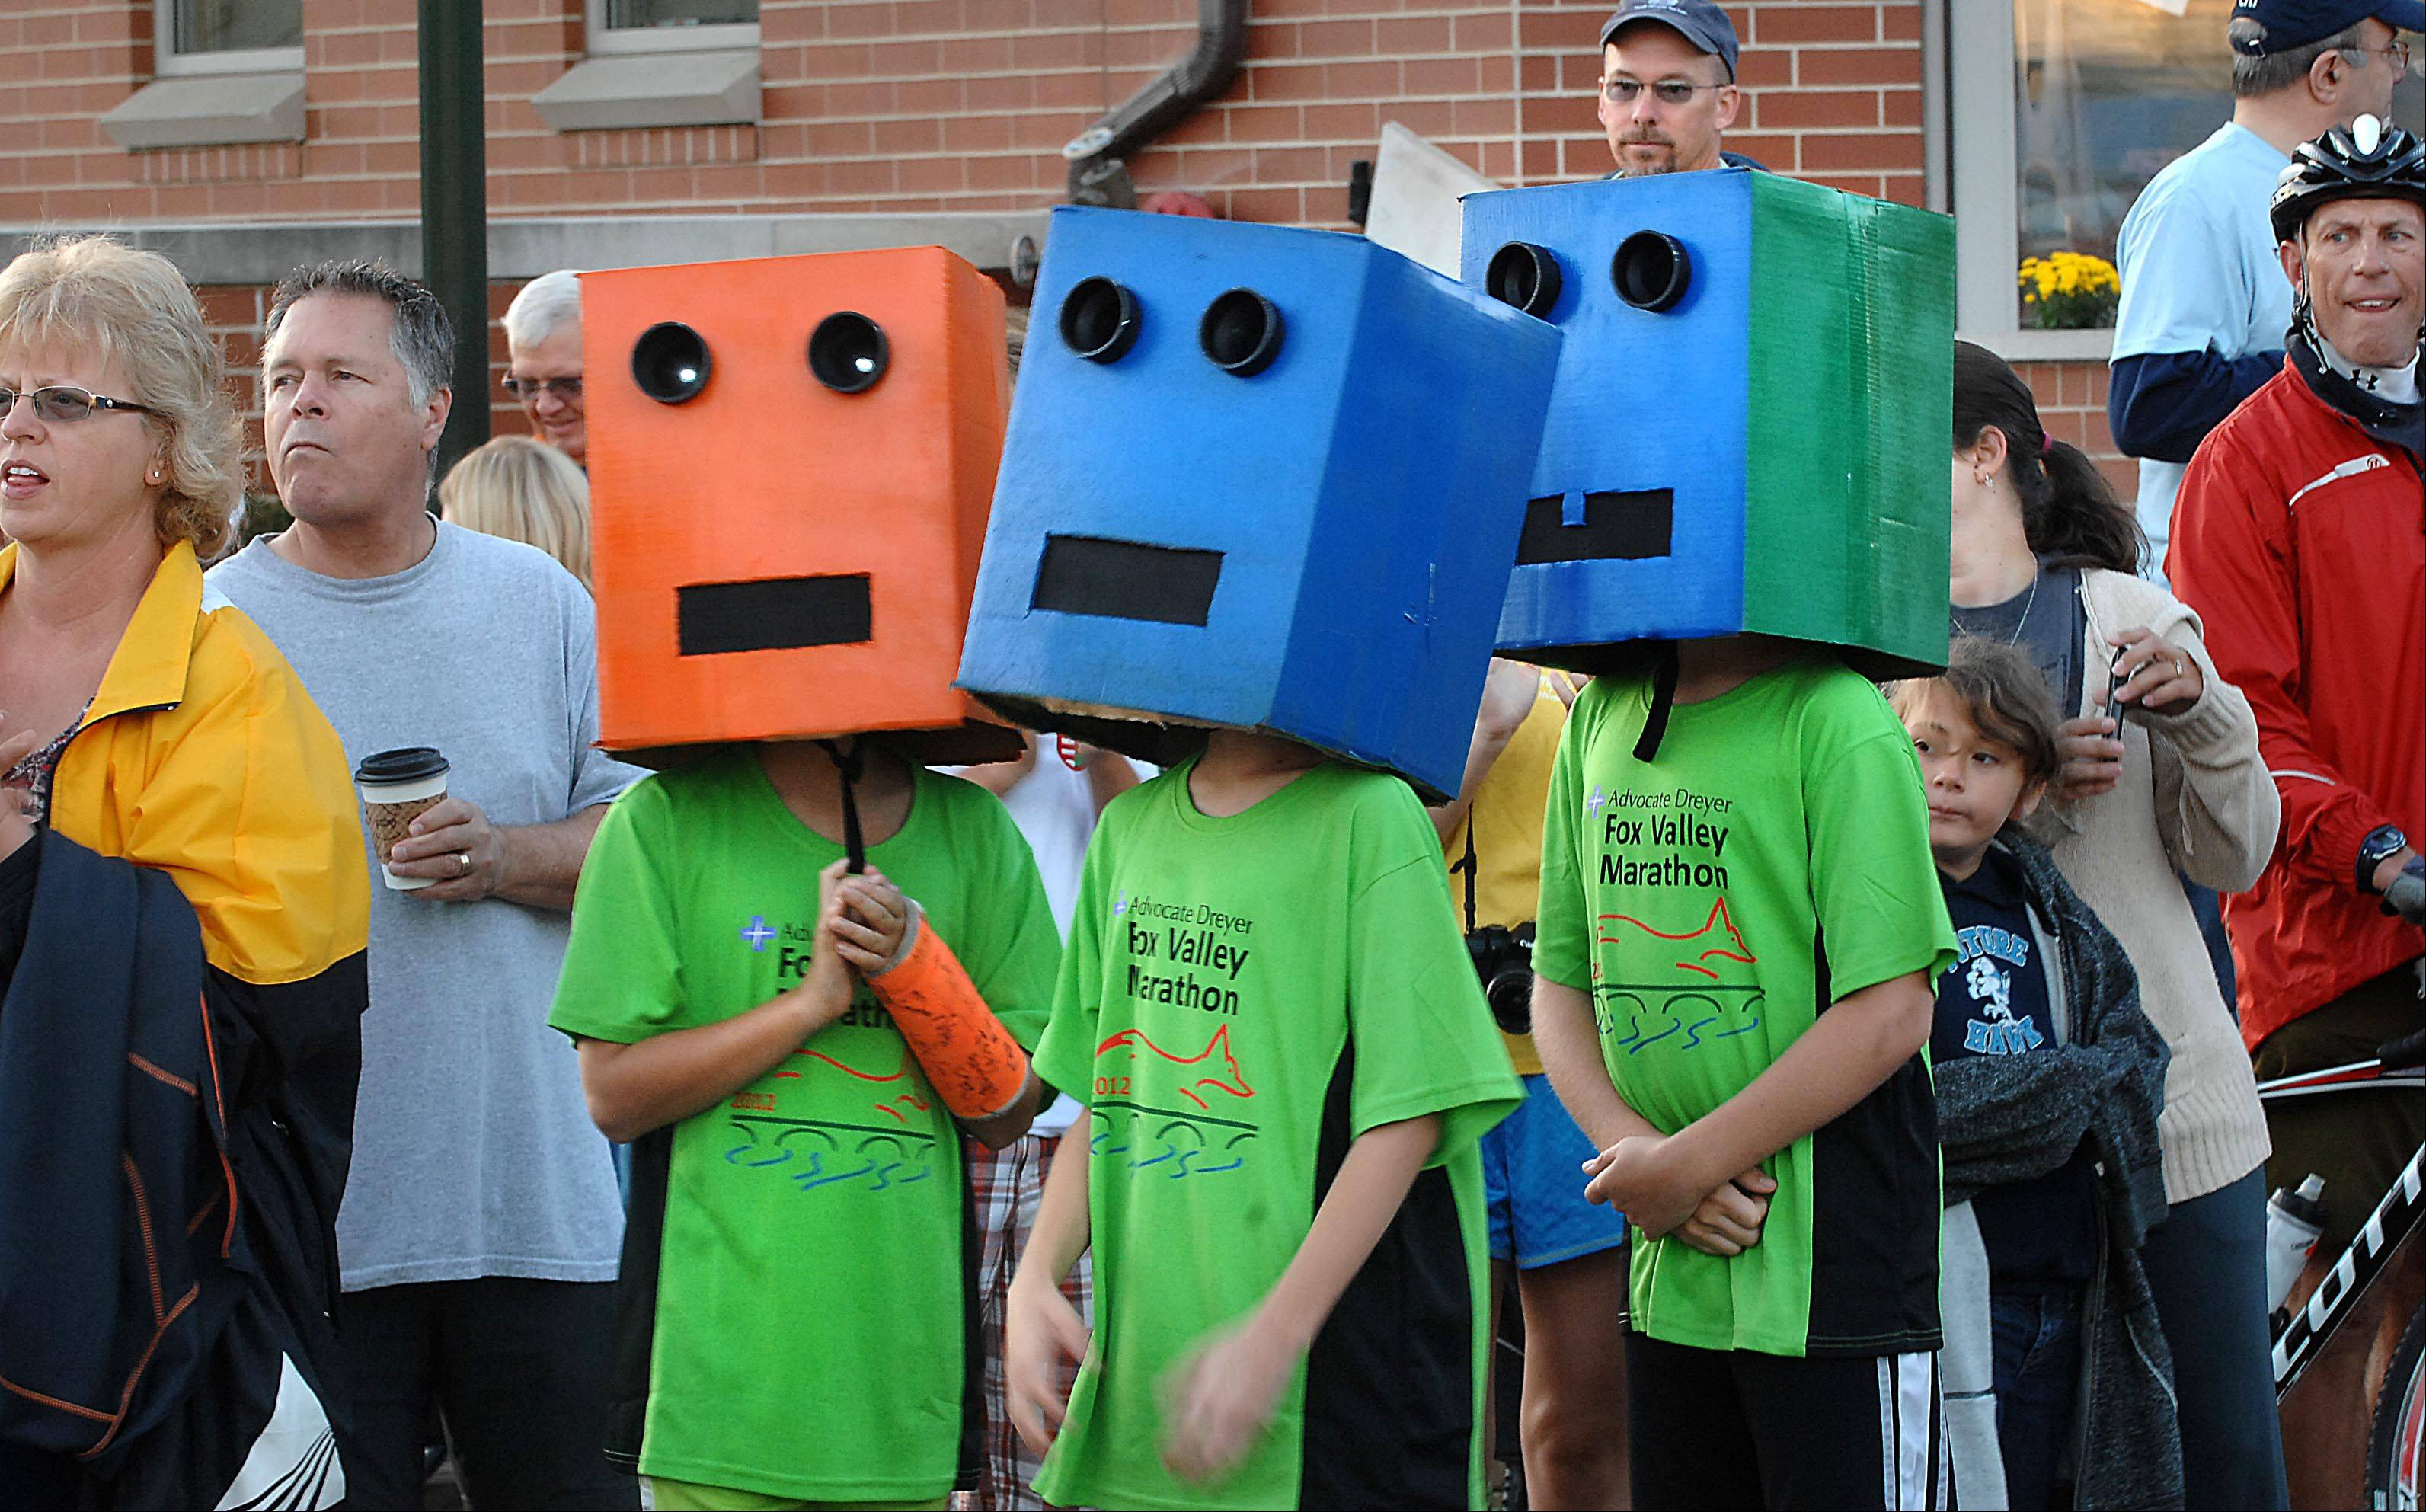 Matthew Fuller, 10, Hank Smith, 11, and Nathan Hilkenann, 10, wore painted boxes with lighted eyes on First Street in St. Charles Sunday morning at the start of the Fox Valley Marathon. The top 30 finishers qualified for the prestigious Boston Marathon. There was also a half marathon and a Final Fall 20 mile race.